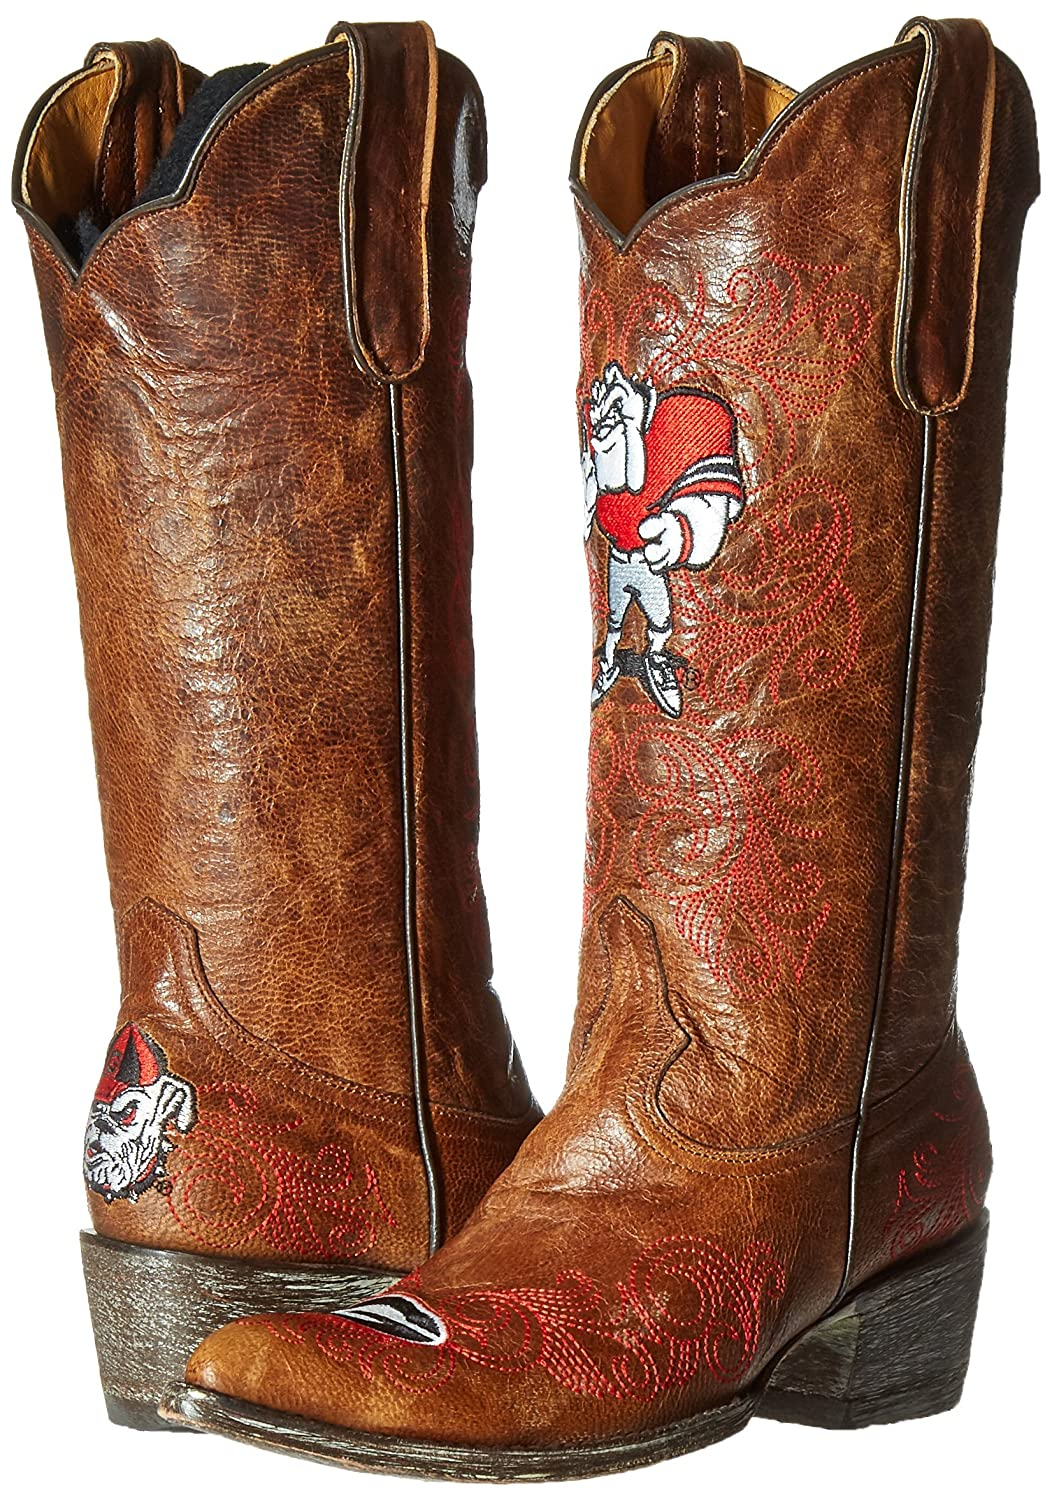 Gameday Boots NCAA Georgia Bulldogs Women's 13-Inch B0094Z6K7Y 7.5 B (M) US|Brass